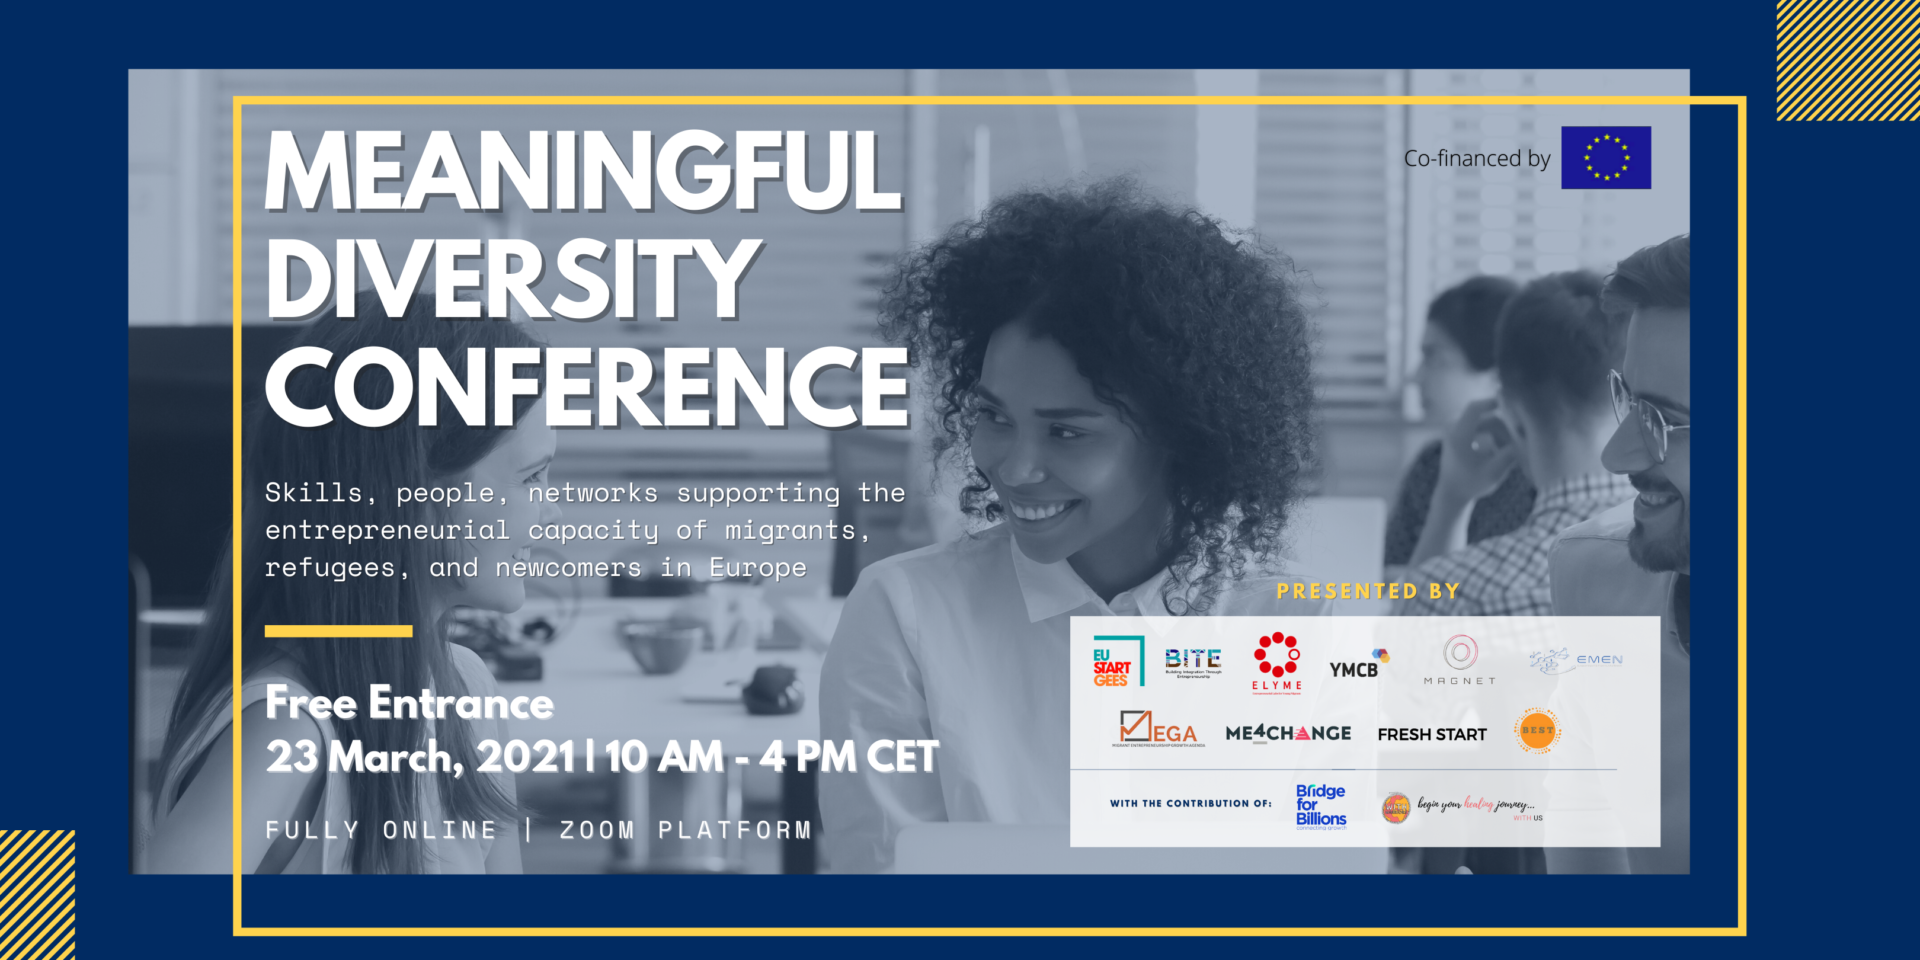 Meaningful diversity conference